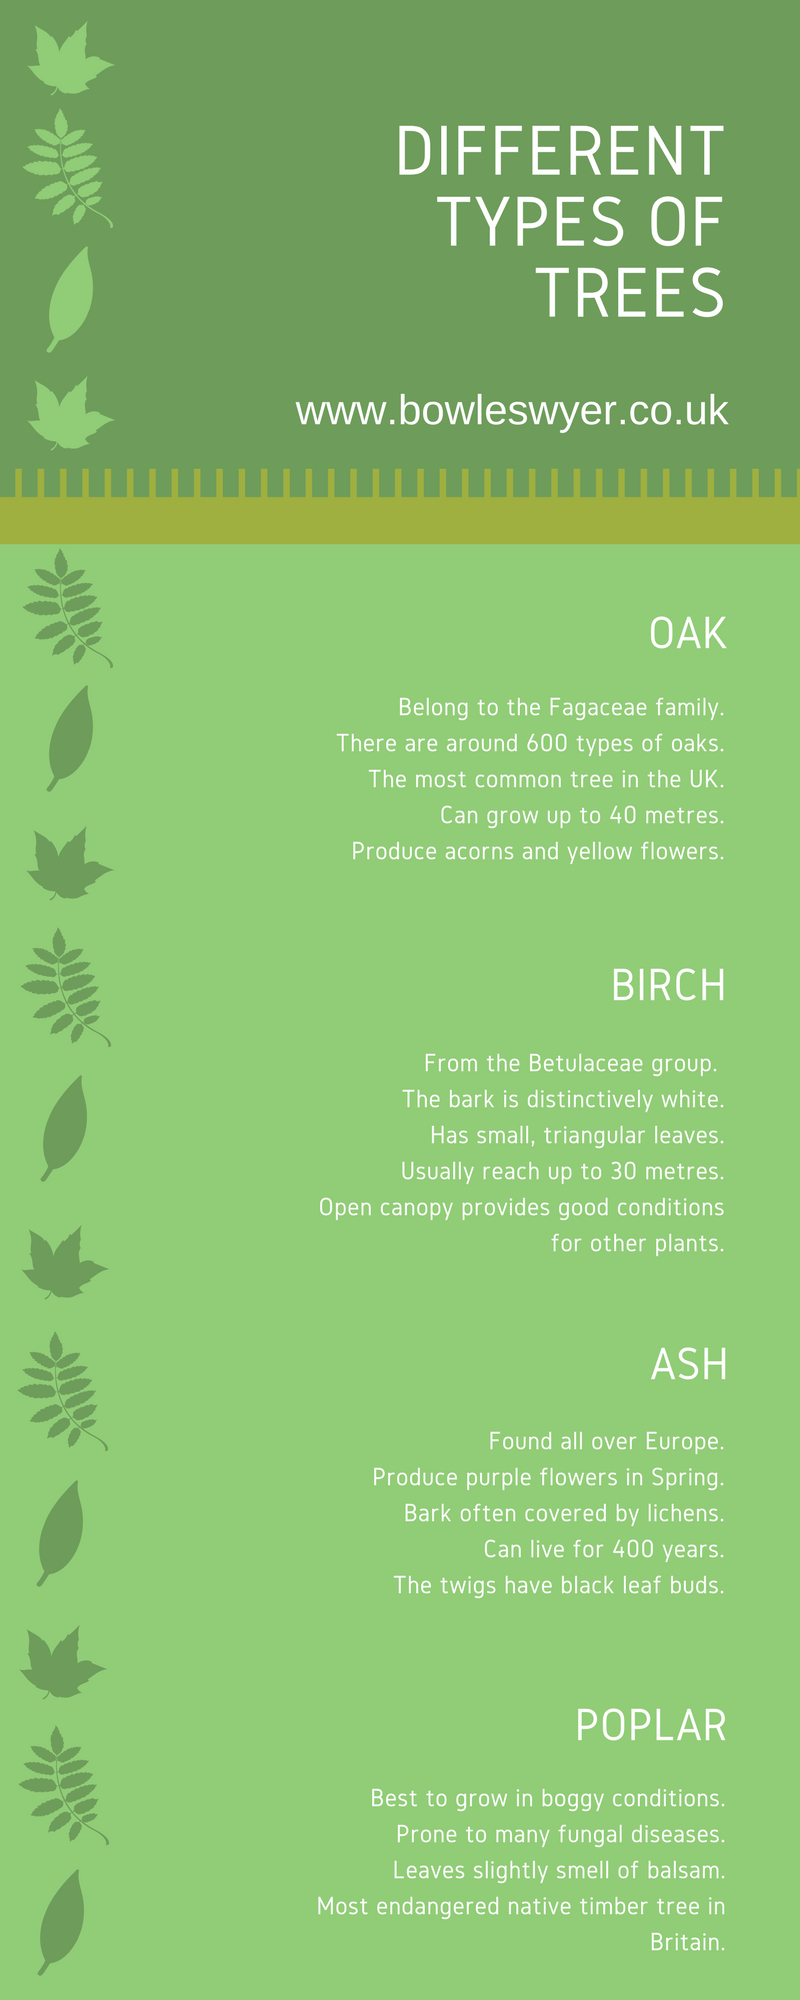 types-of-trees-infographic-galleryr